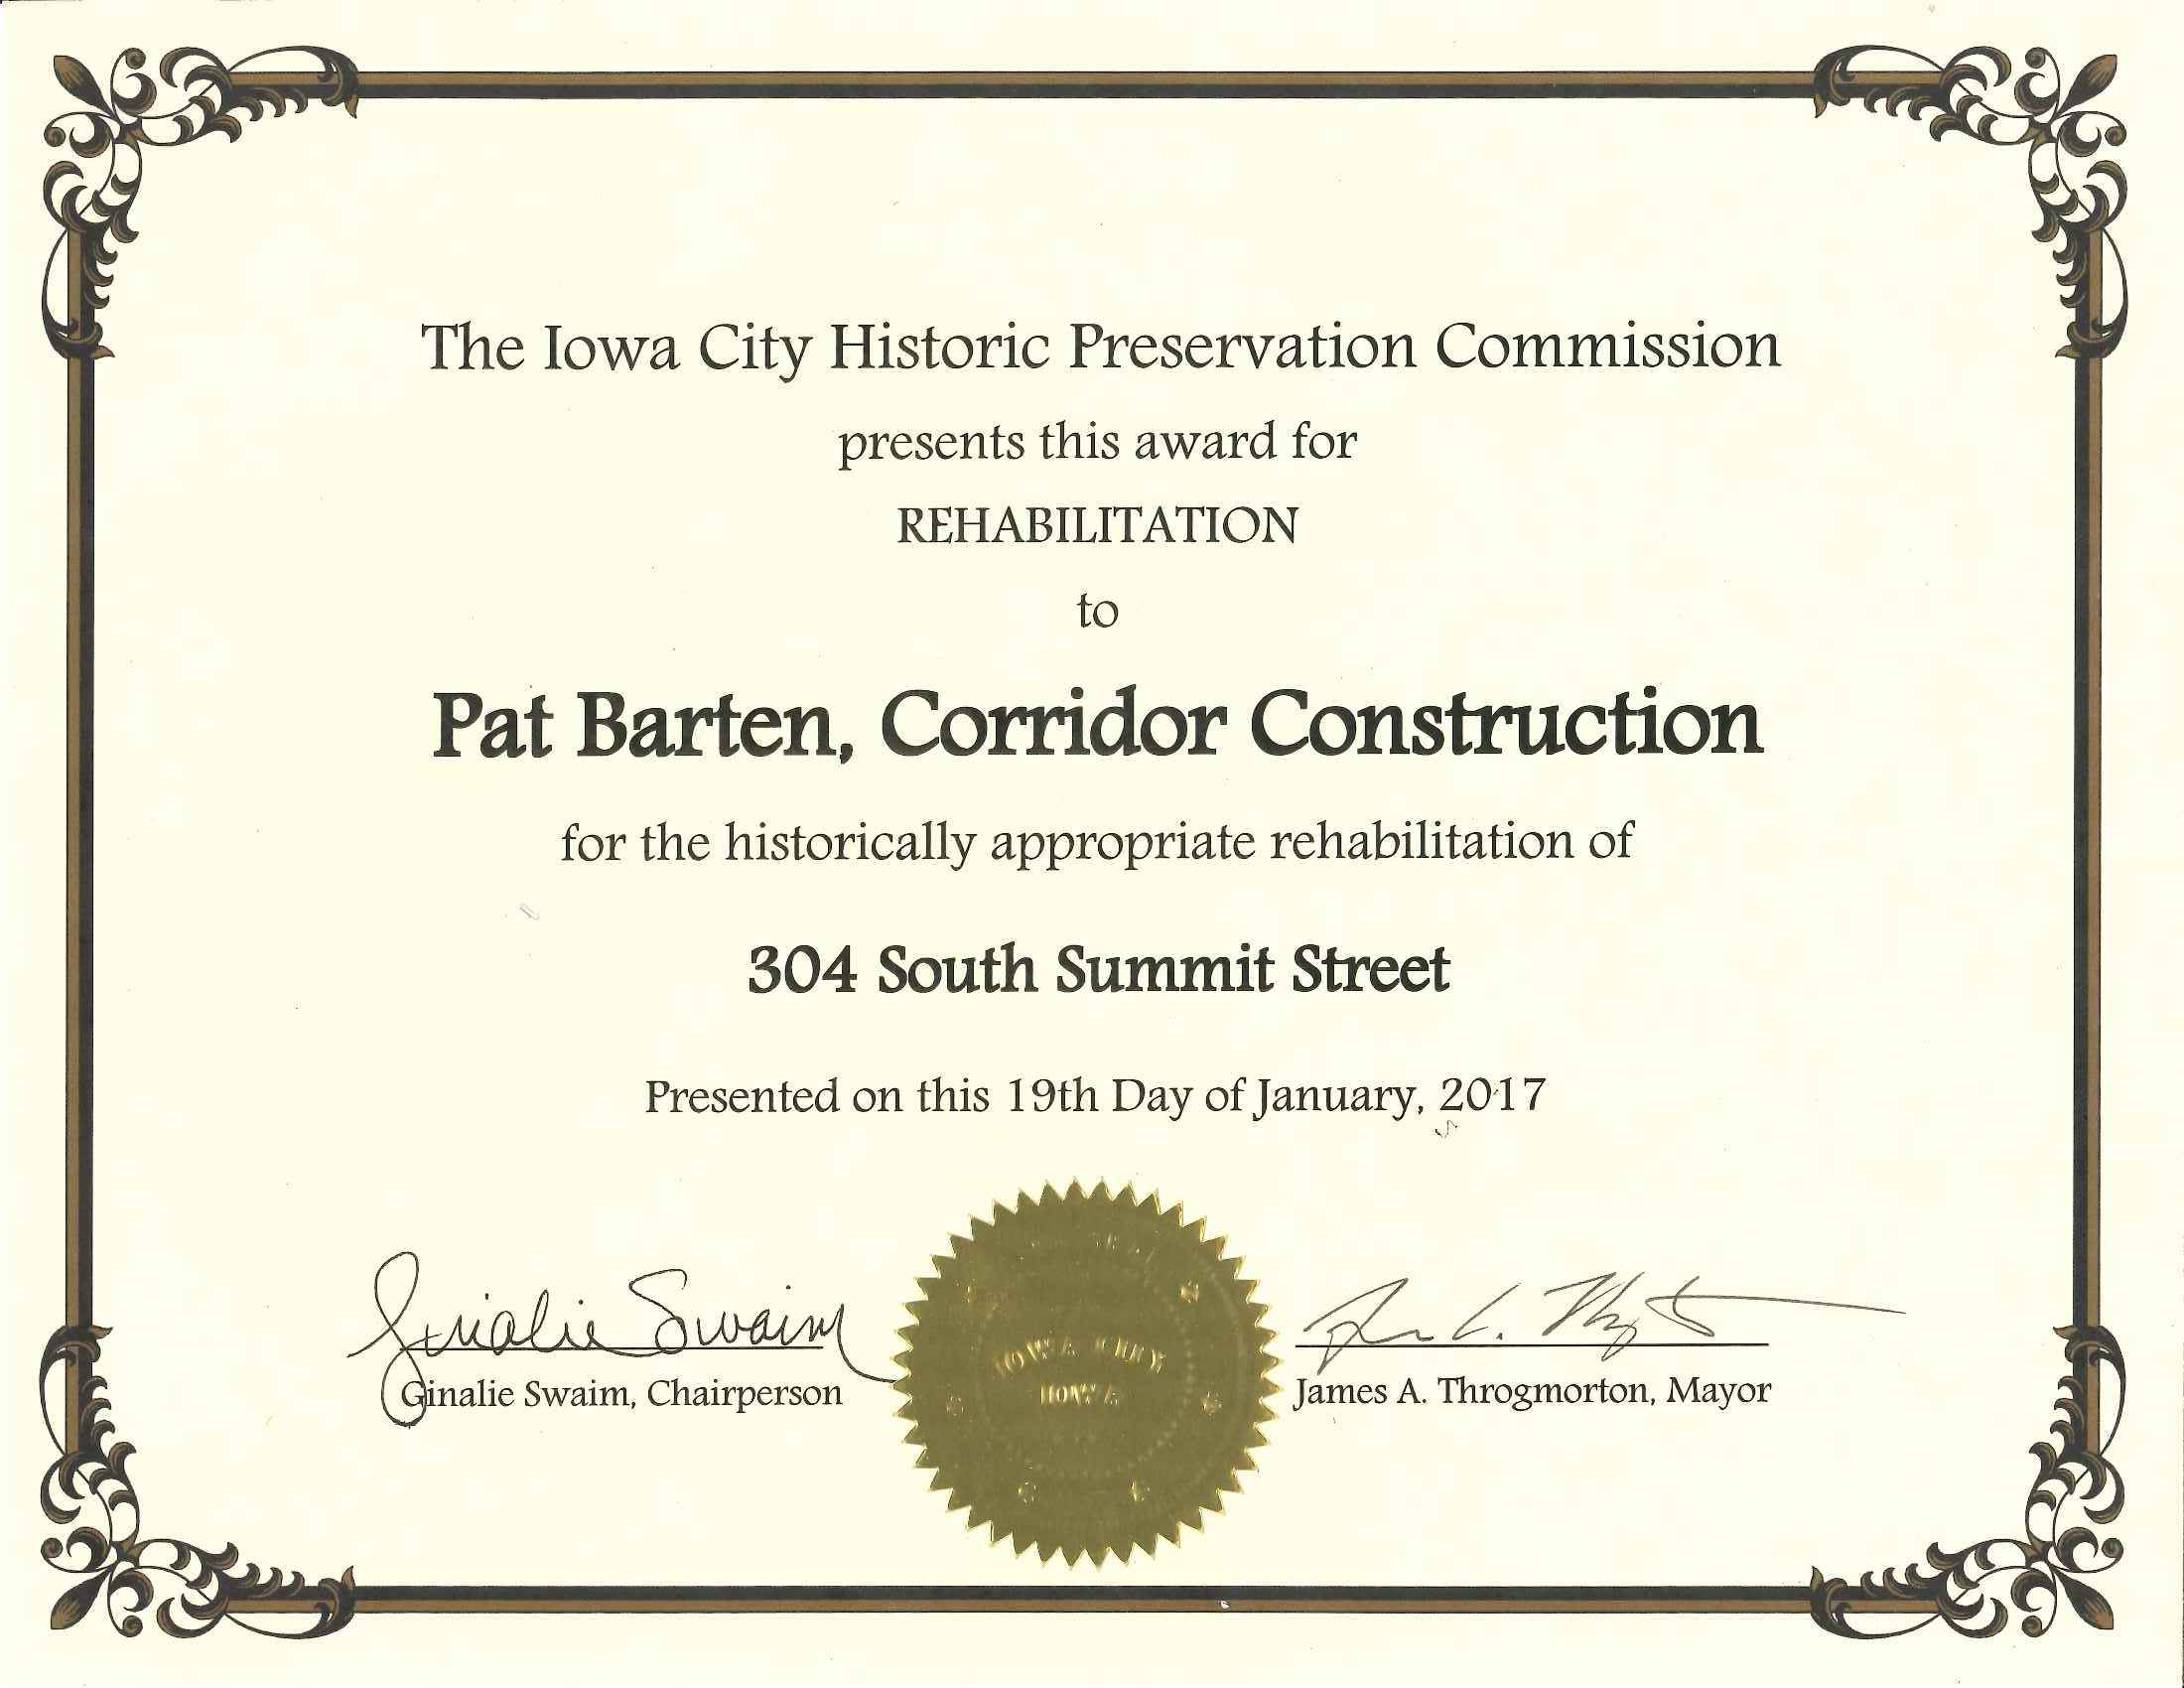 Iowa City Historic Preservation Commission Award